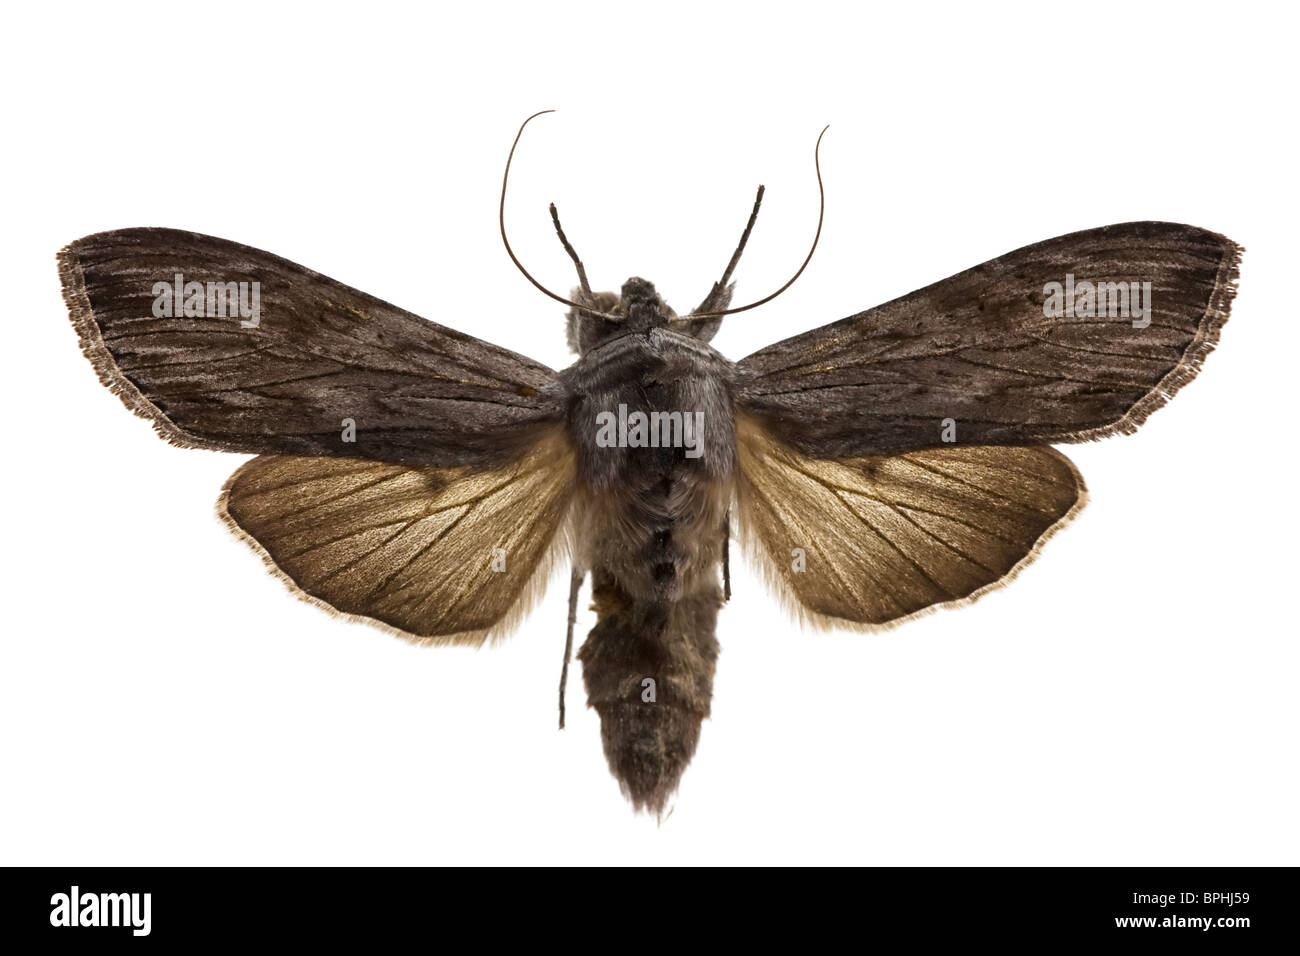 Shark Moth isolated on white. - Stock Image